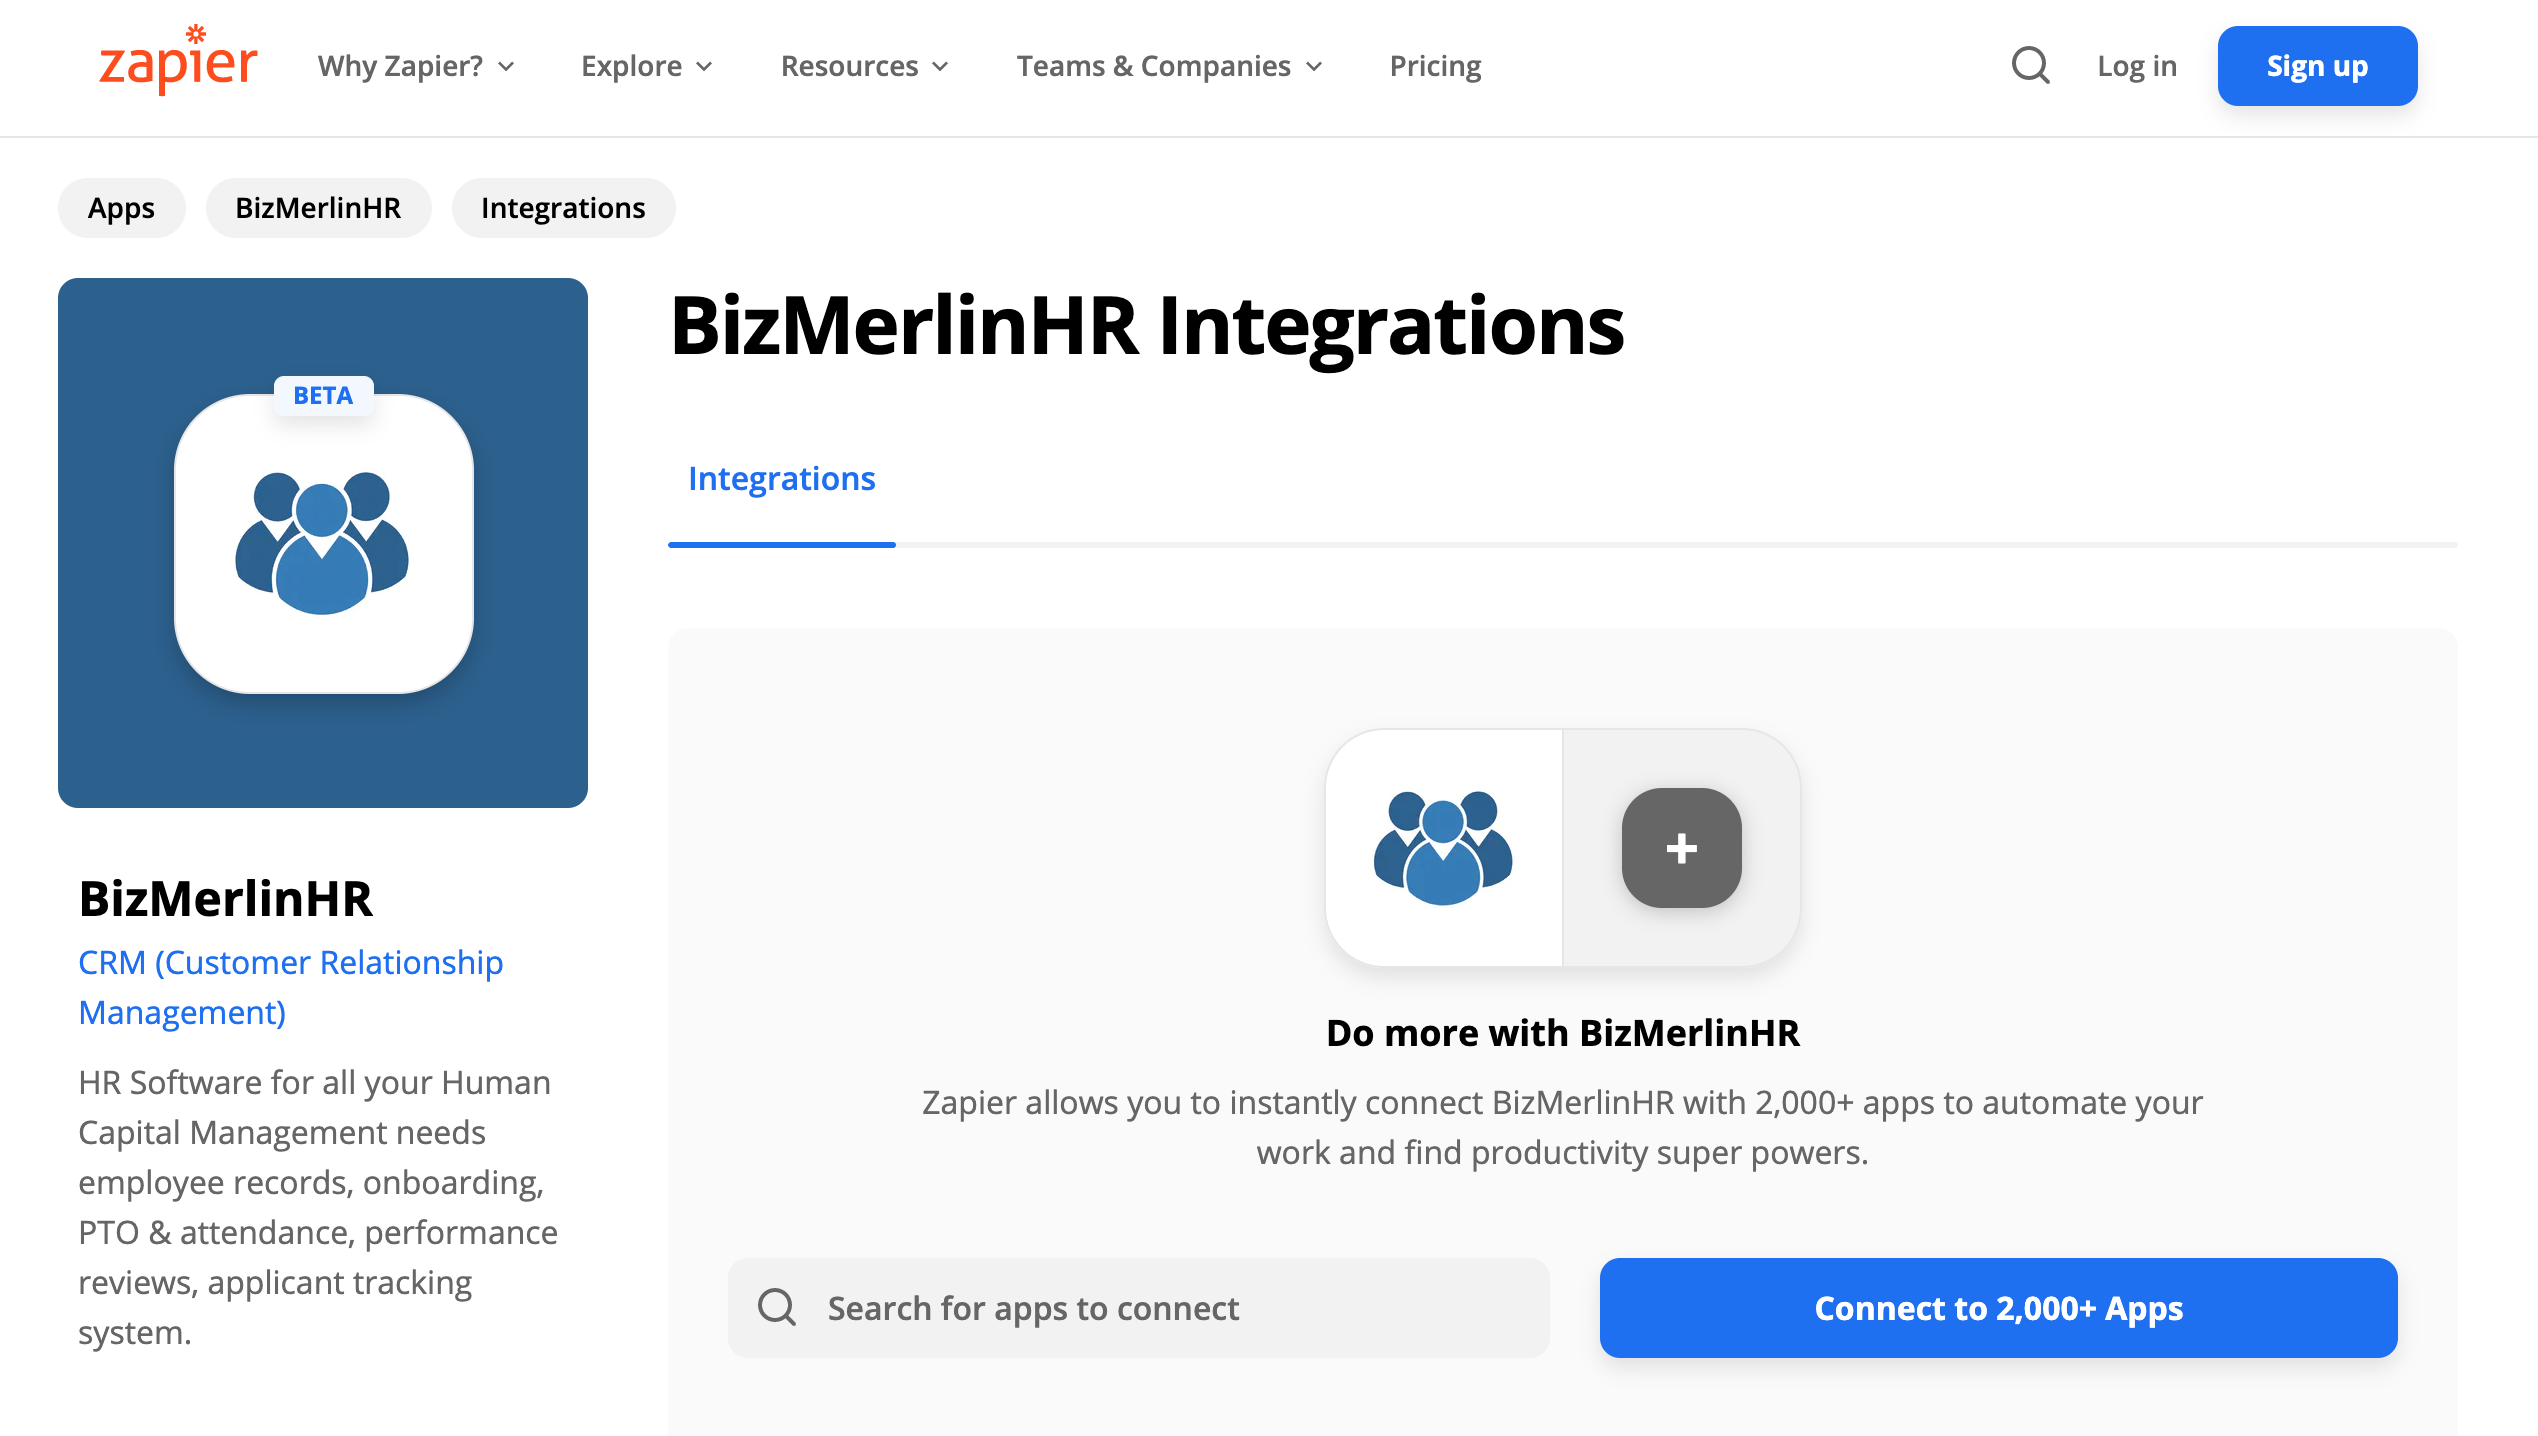 Zapier-BizMerlinHR Integrations